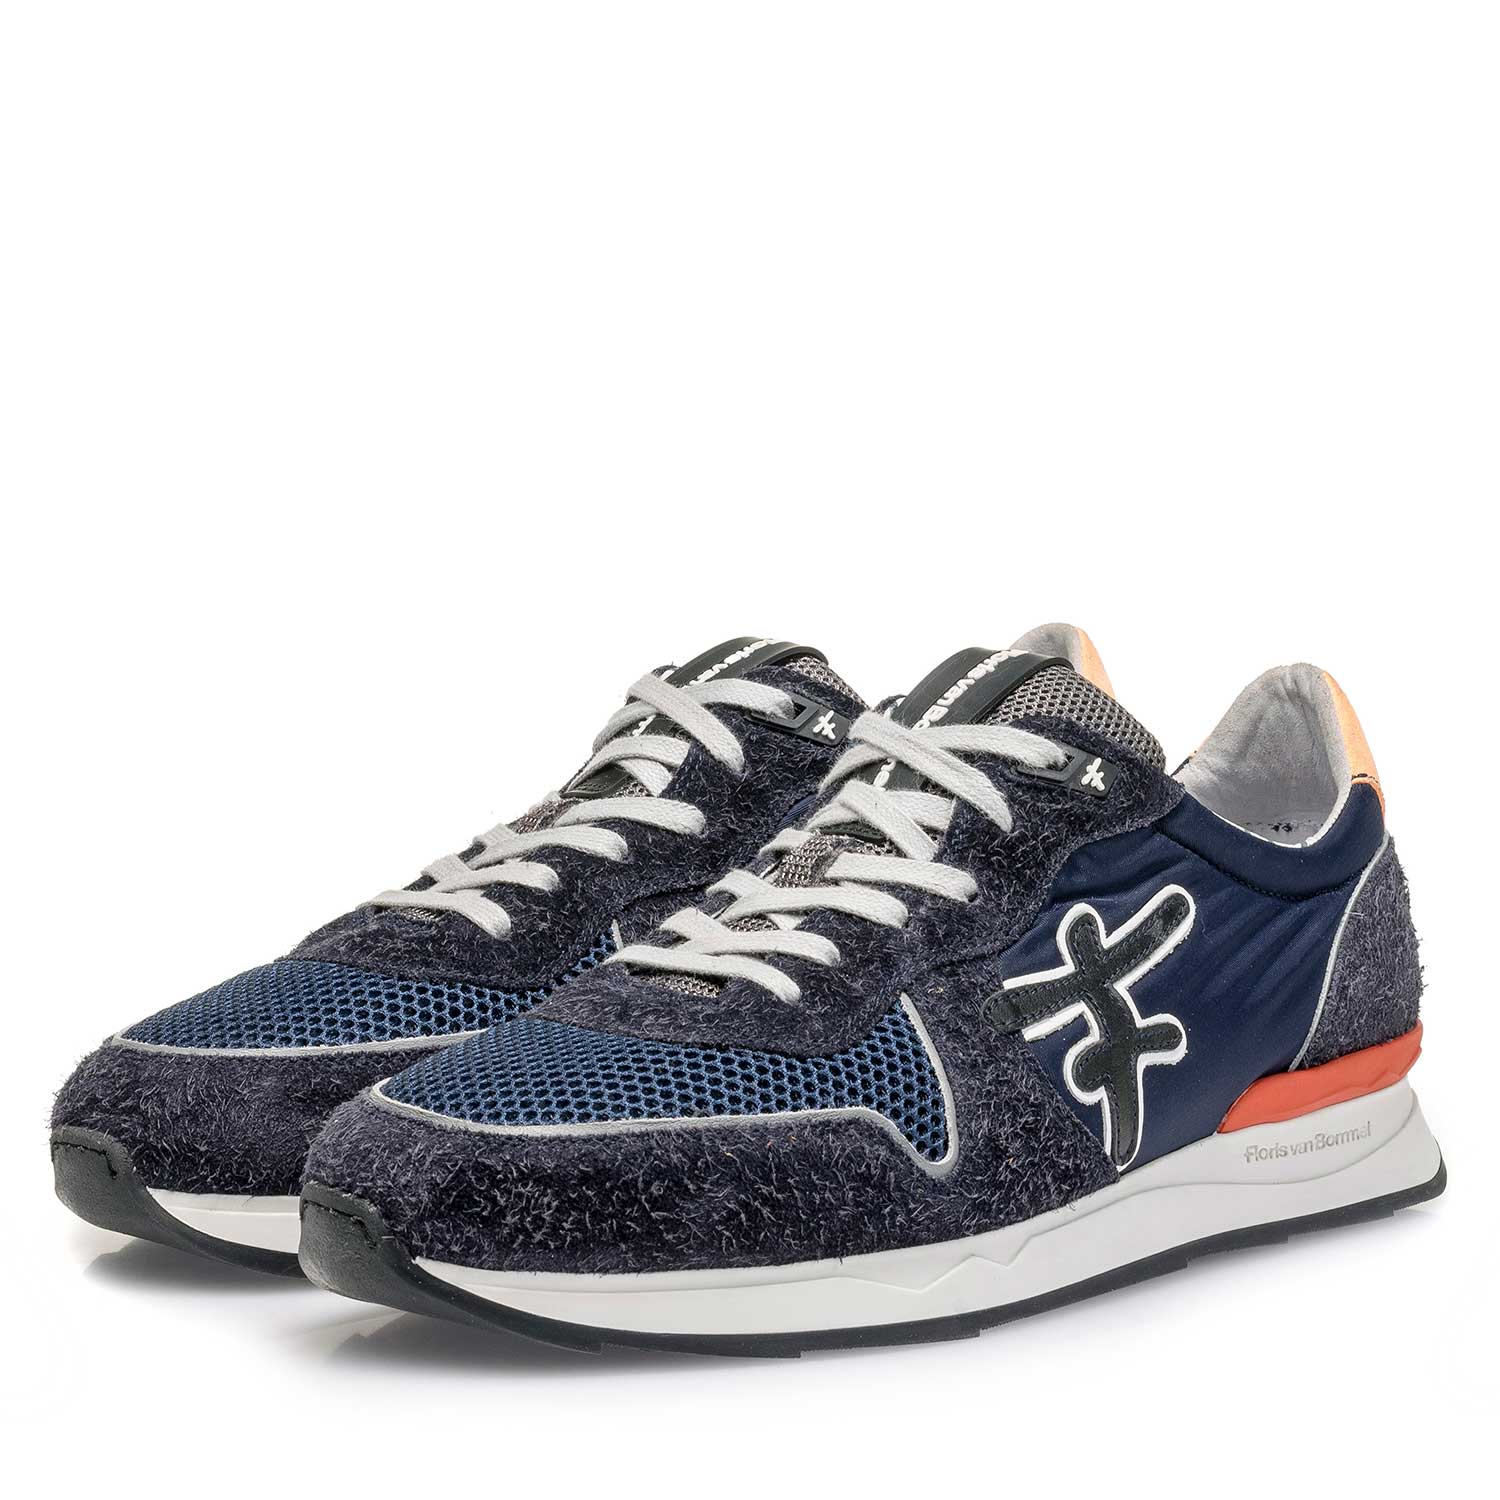 16246/01 - Dark blue-orange suede leather sneaker